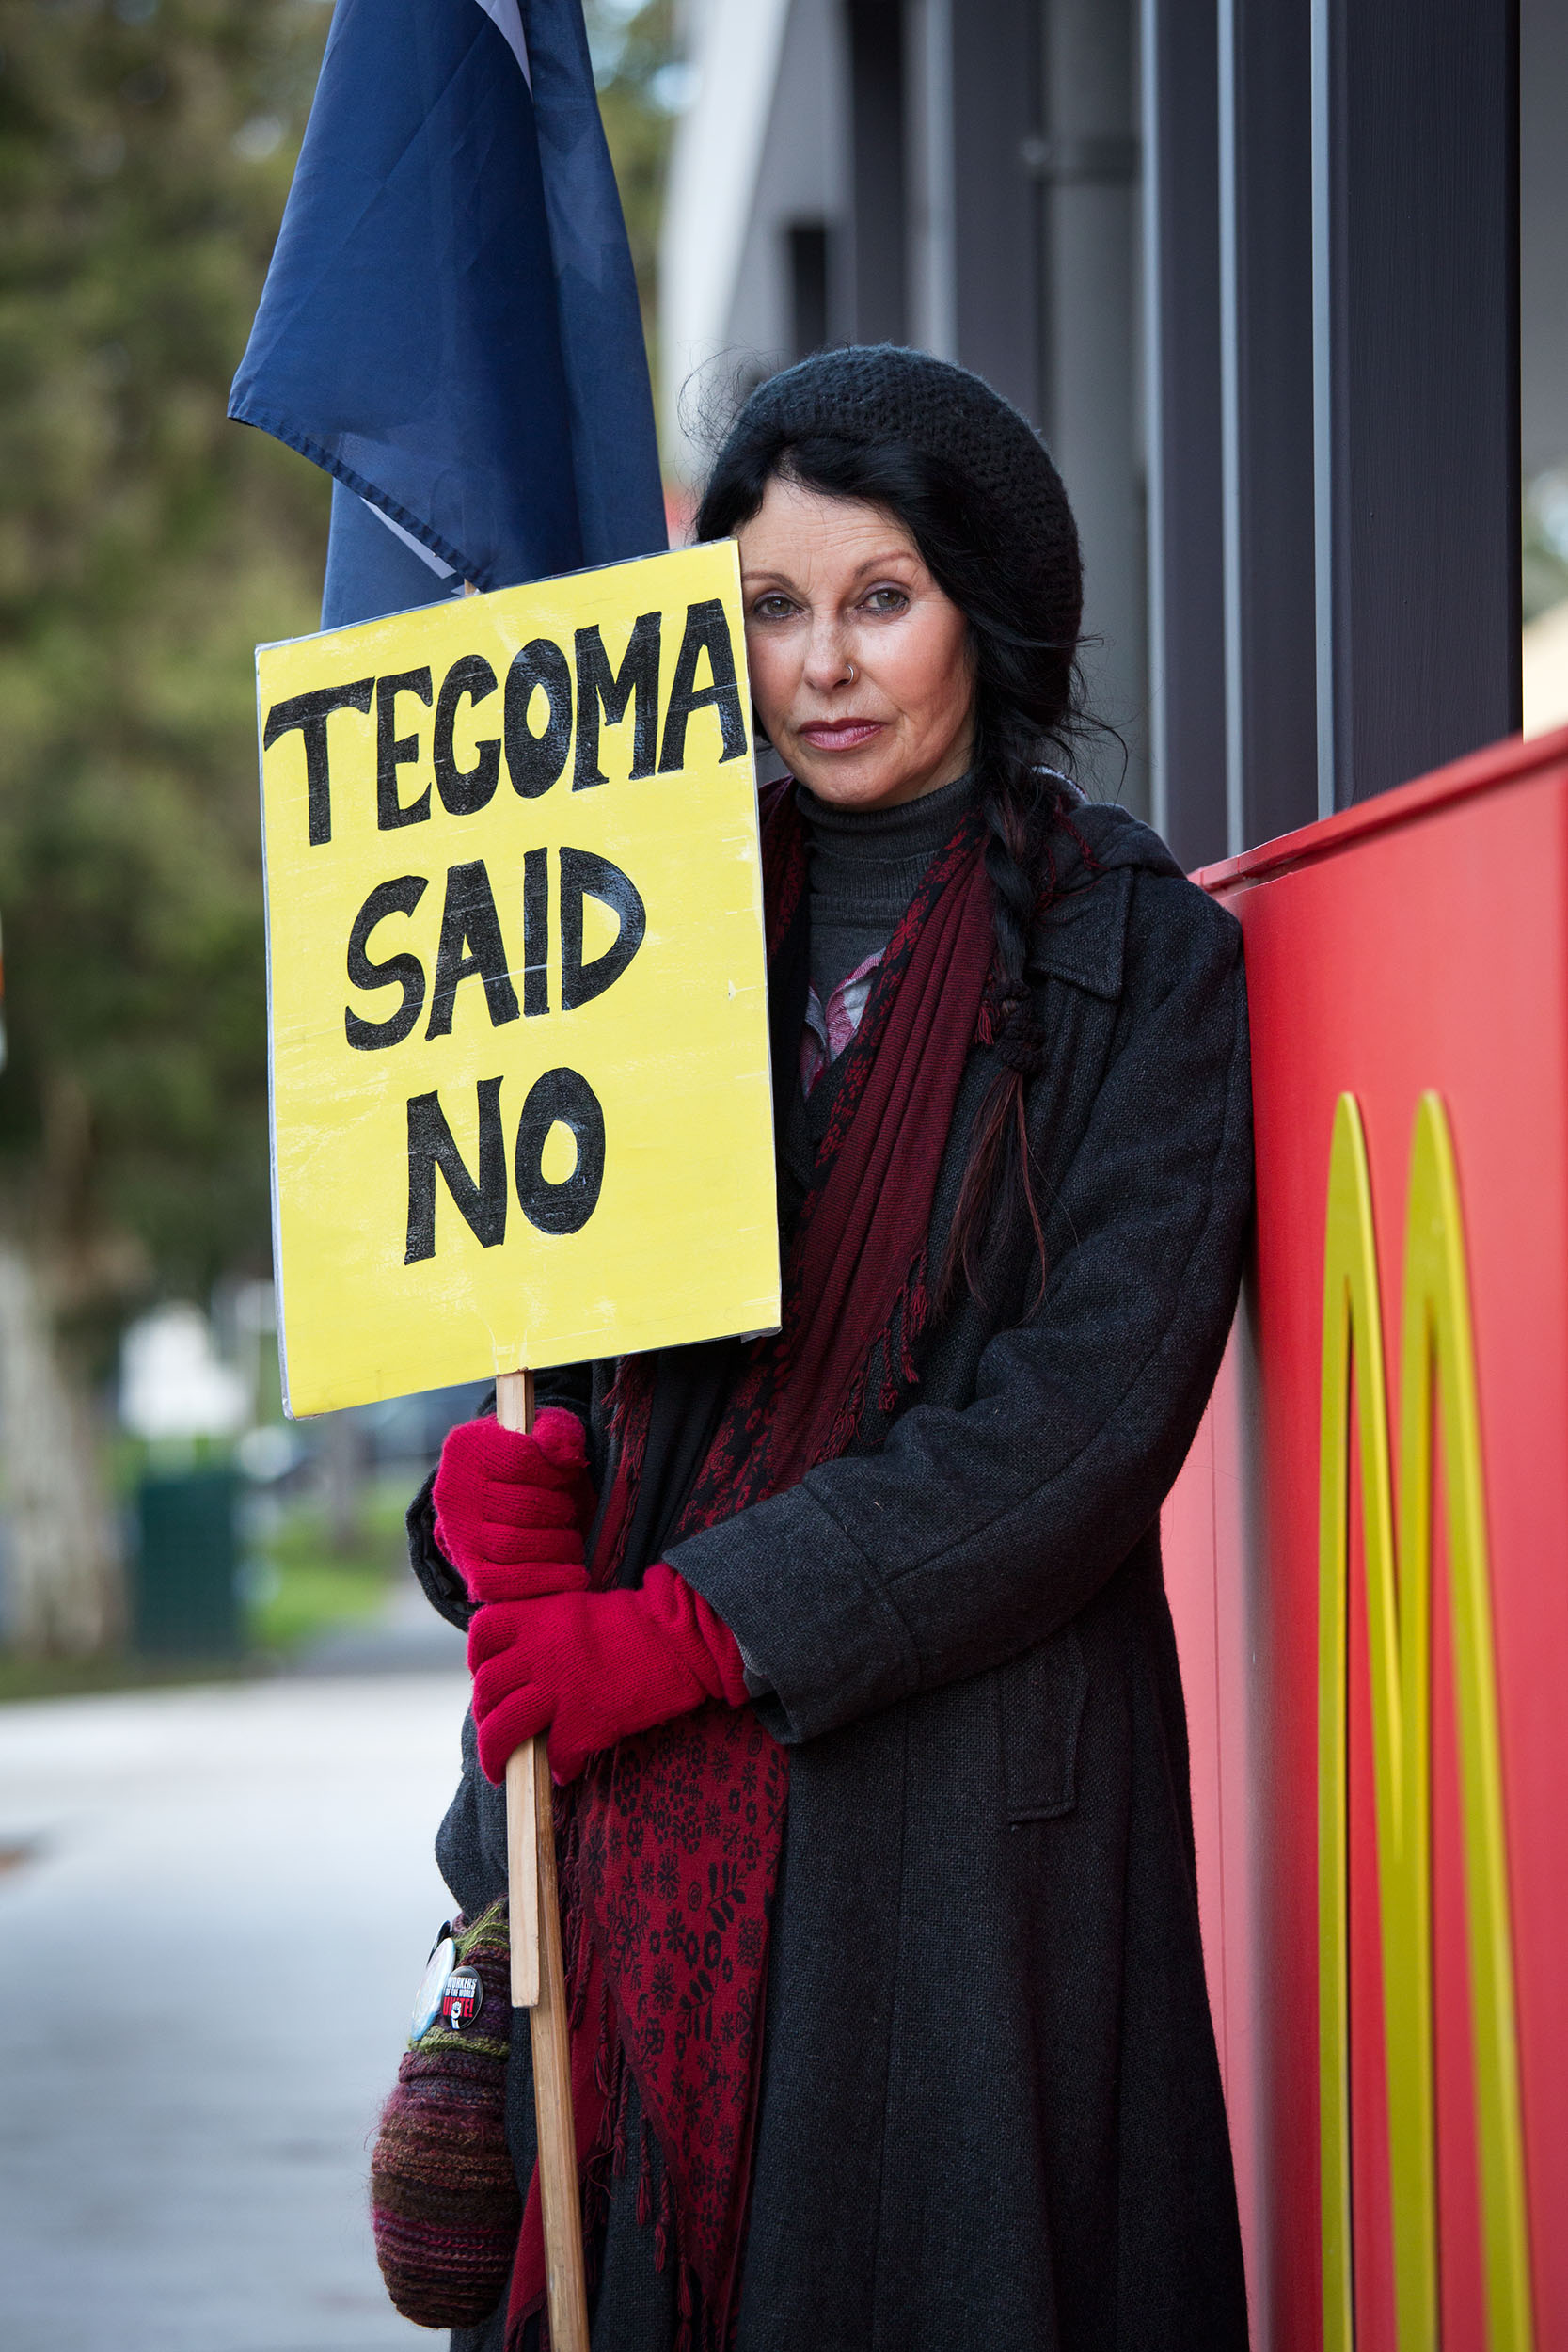 Week 29: Marcia, Tecoma, VICTecoma's controversial McDonalds is now a reality, but a dedicated group of locals, including Marcia, continue to protest.